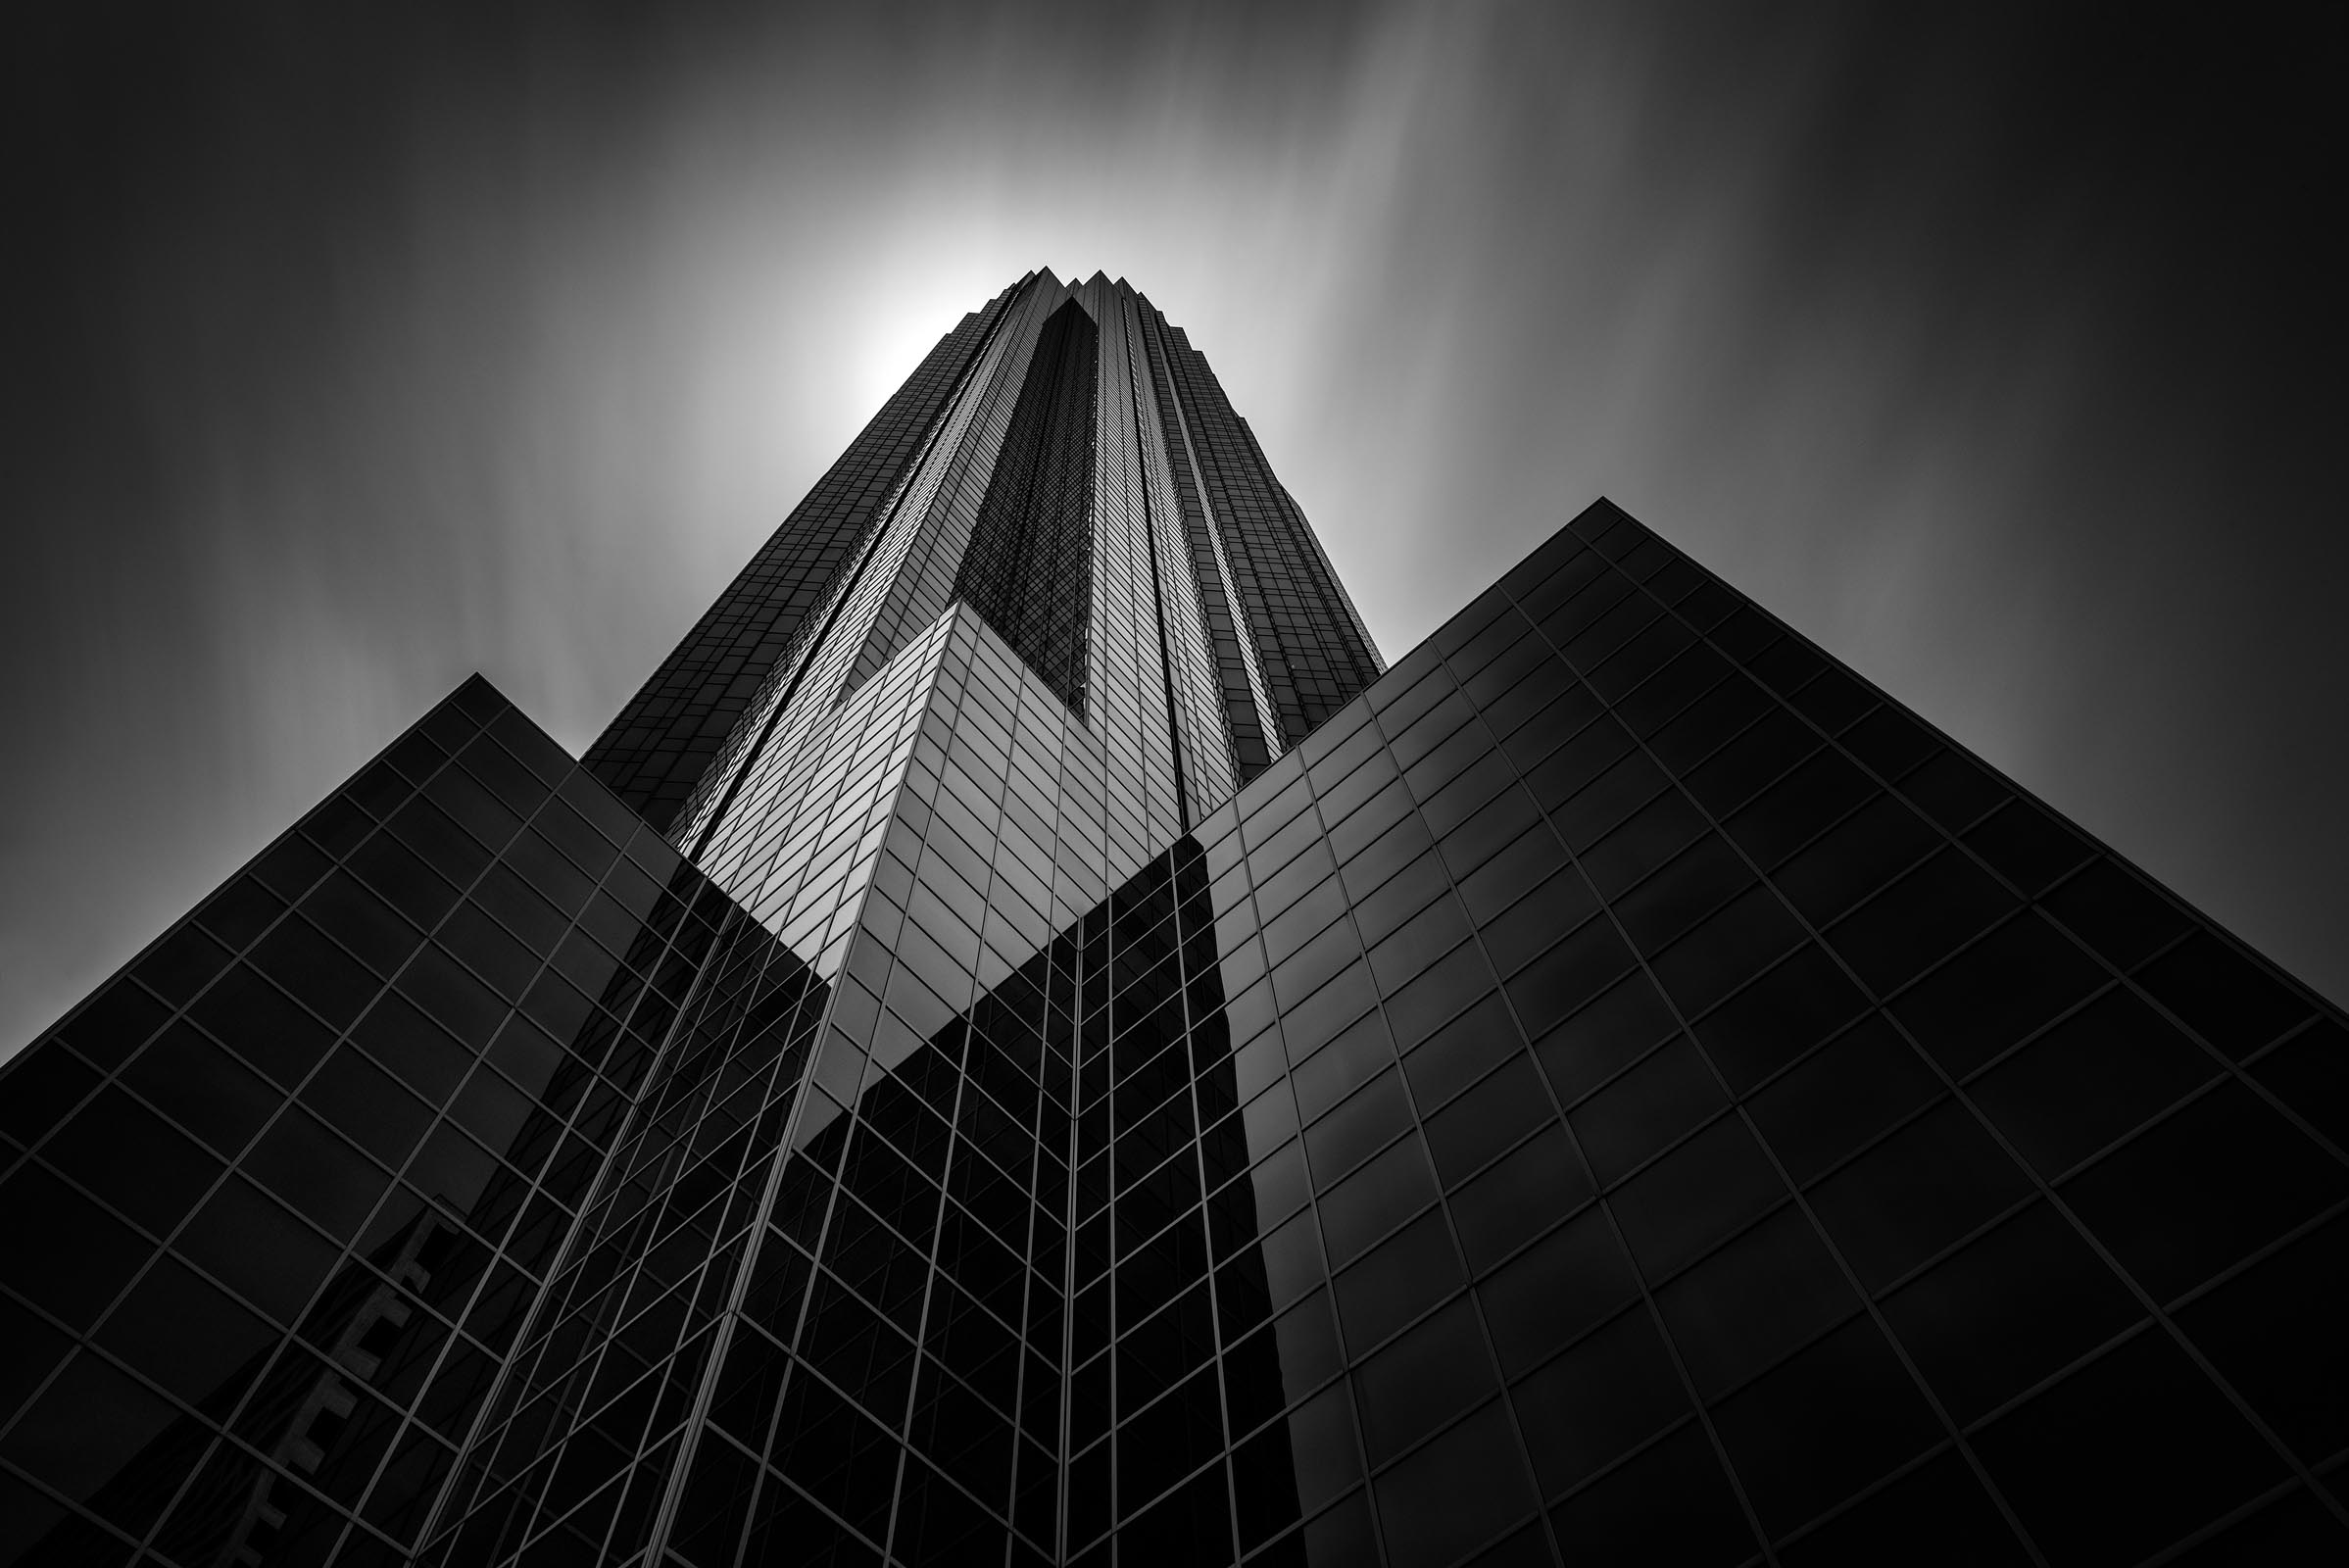 Photograph of Williams Tower in Houston, Texas by Brent Goldman Photography